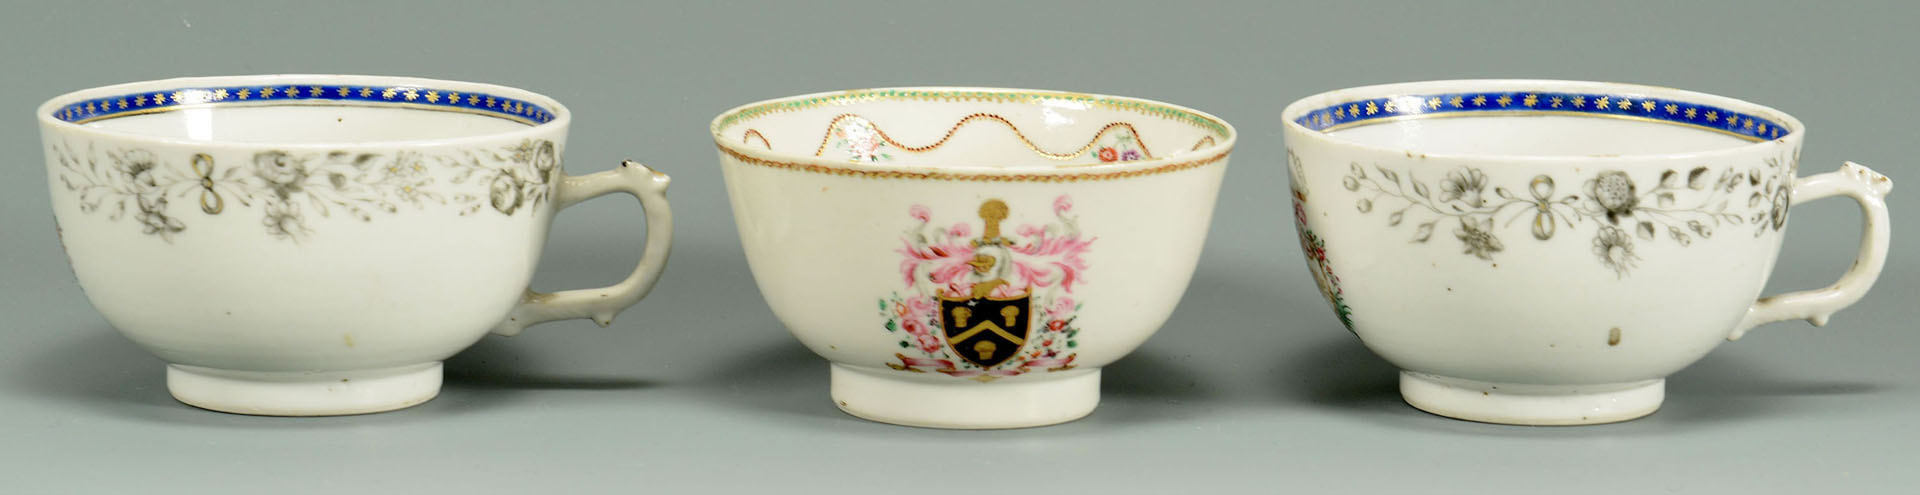 Lot 231: 5 pieces Chinese export armorial porcelain, 18th c